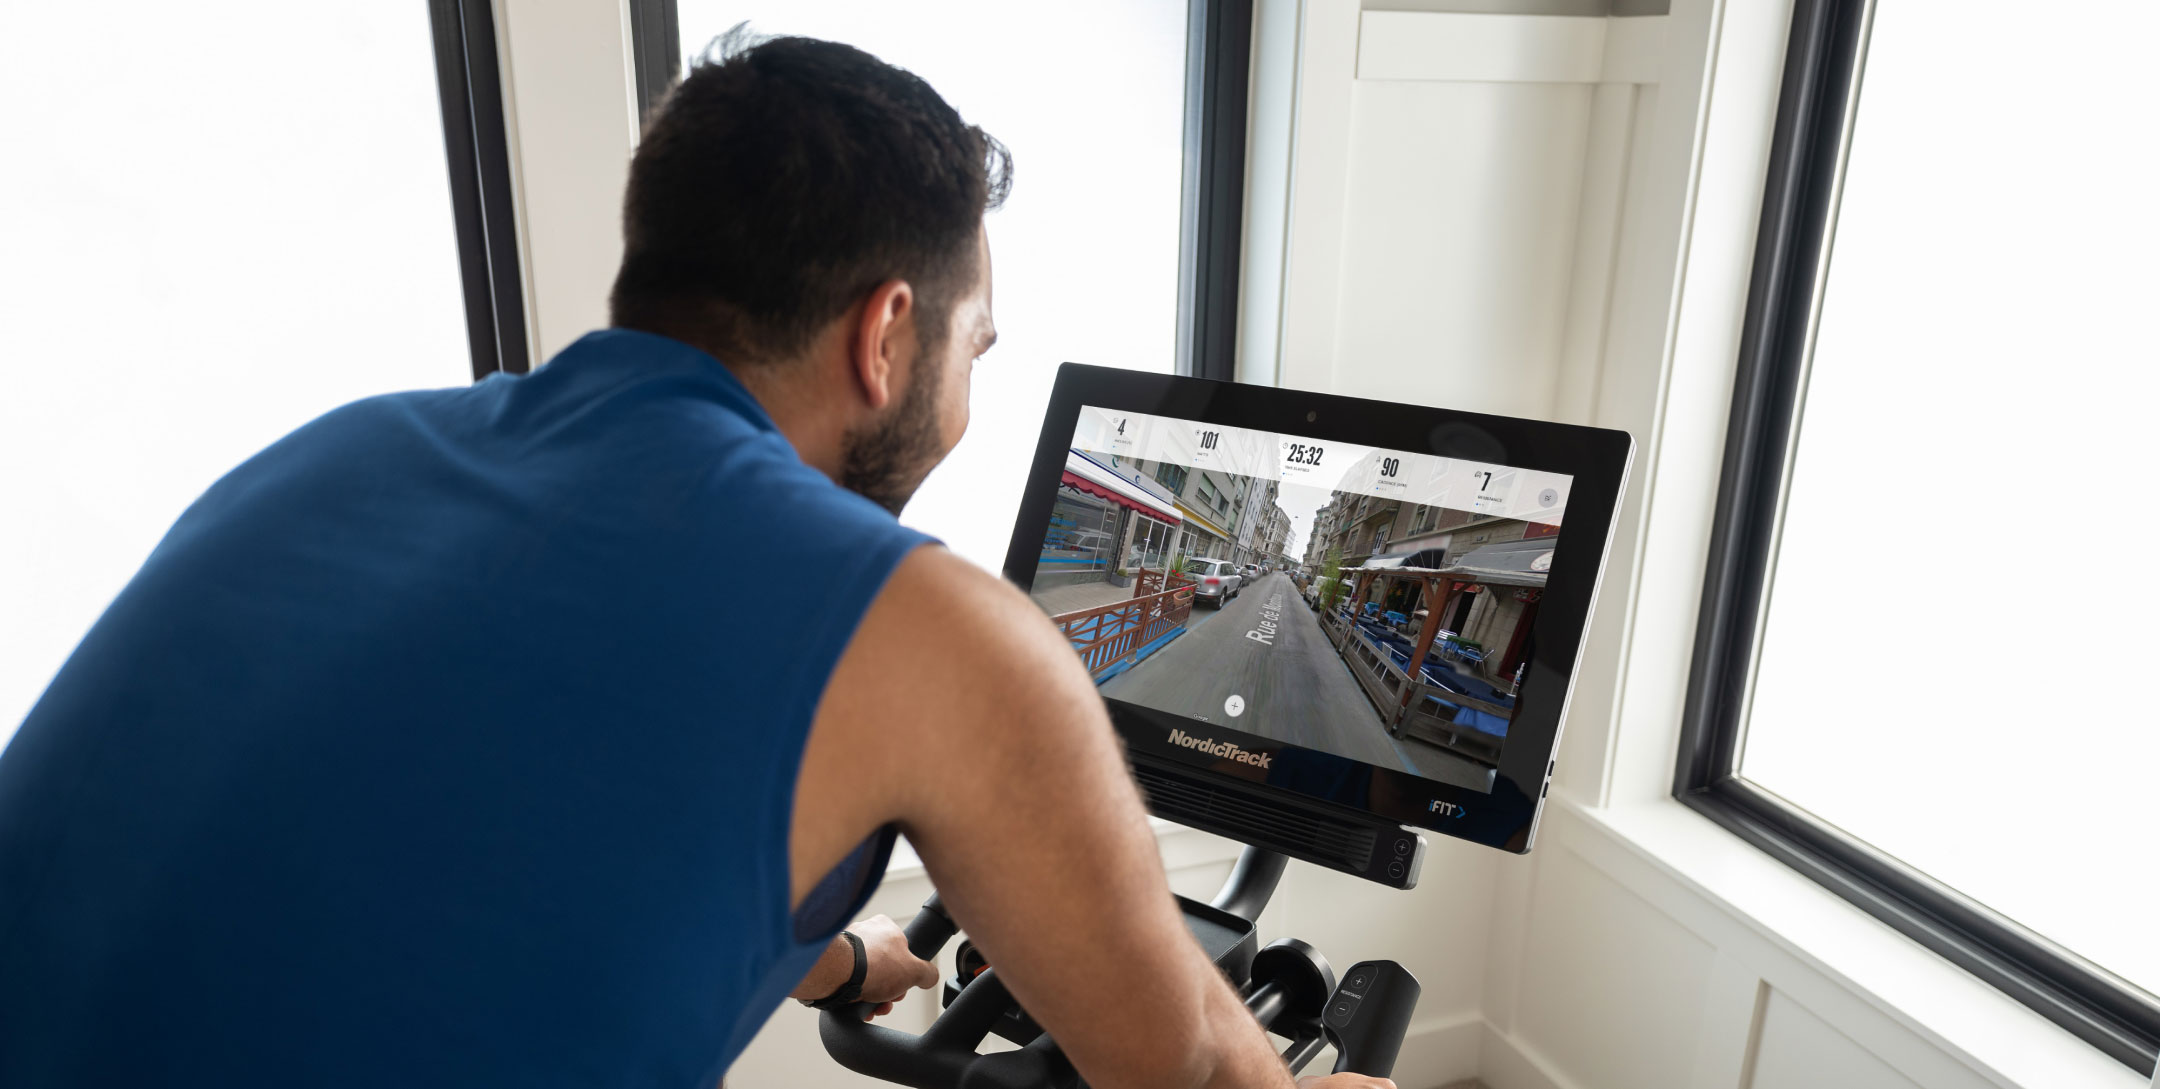 Man rides NordicTrack bike while viewing Google Maps